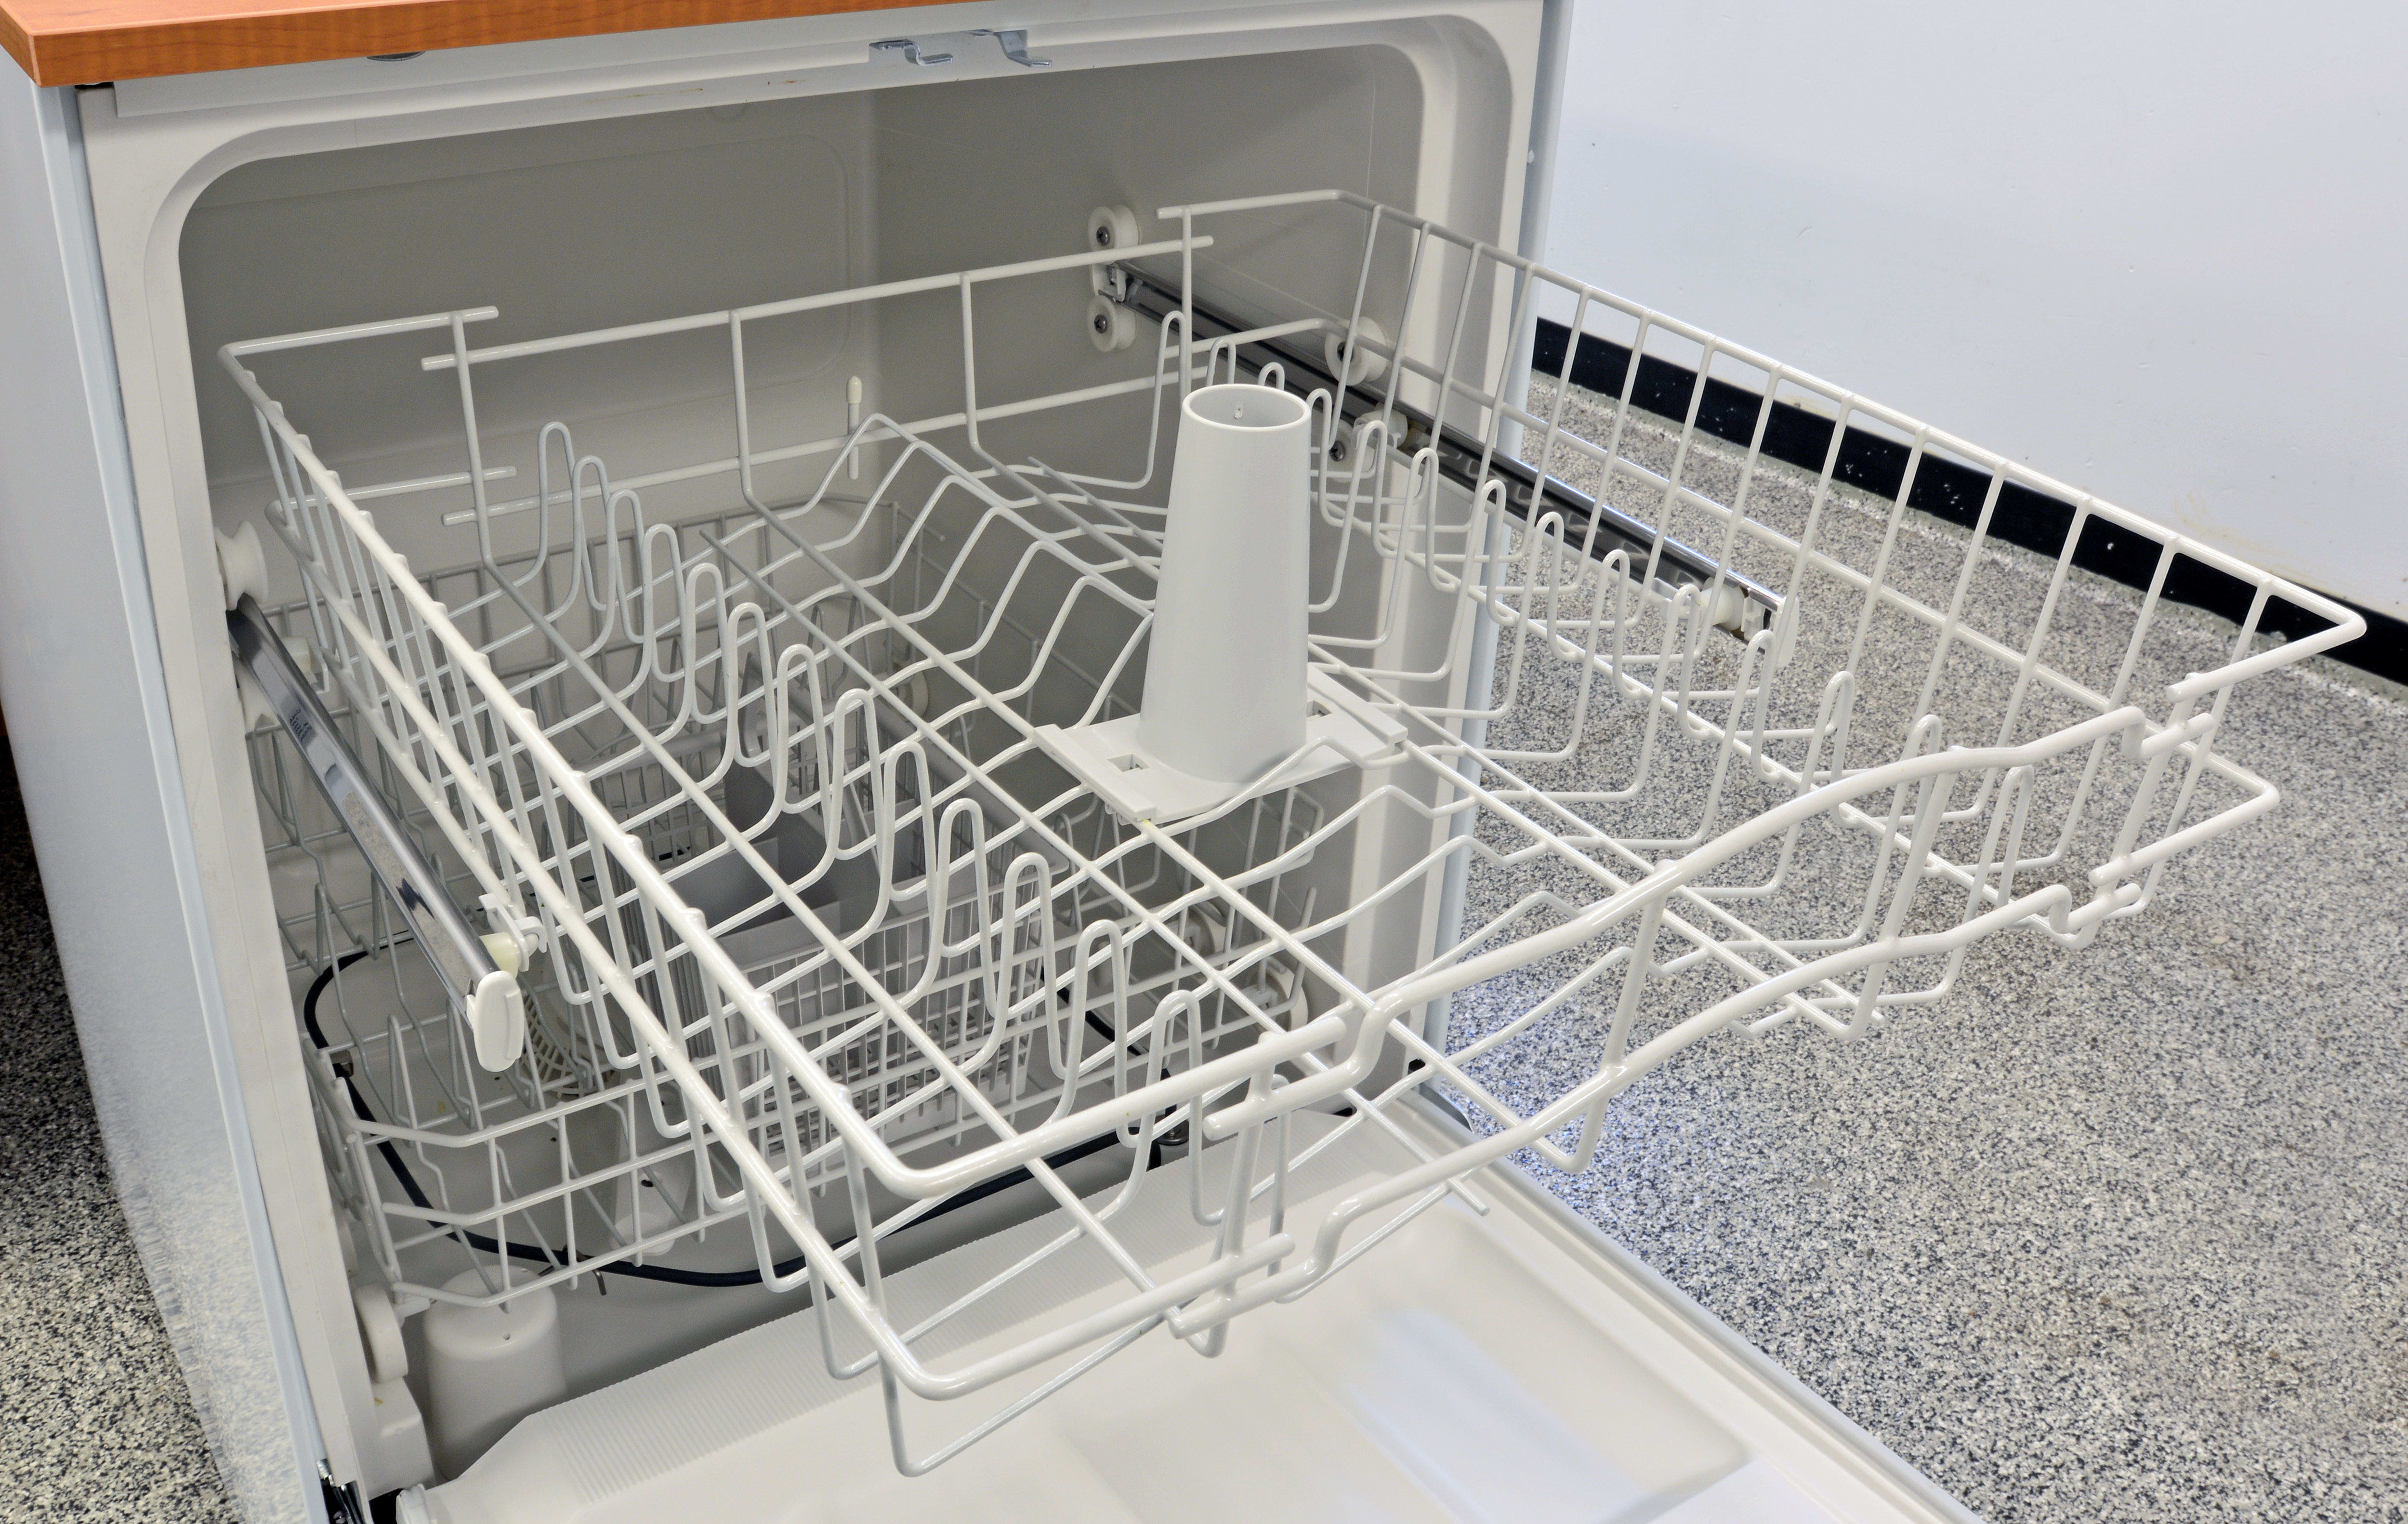 GE GSC3500DWW Portable Dishwasher Review Reviewed Dishwashers